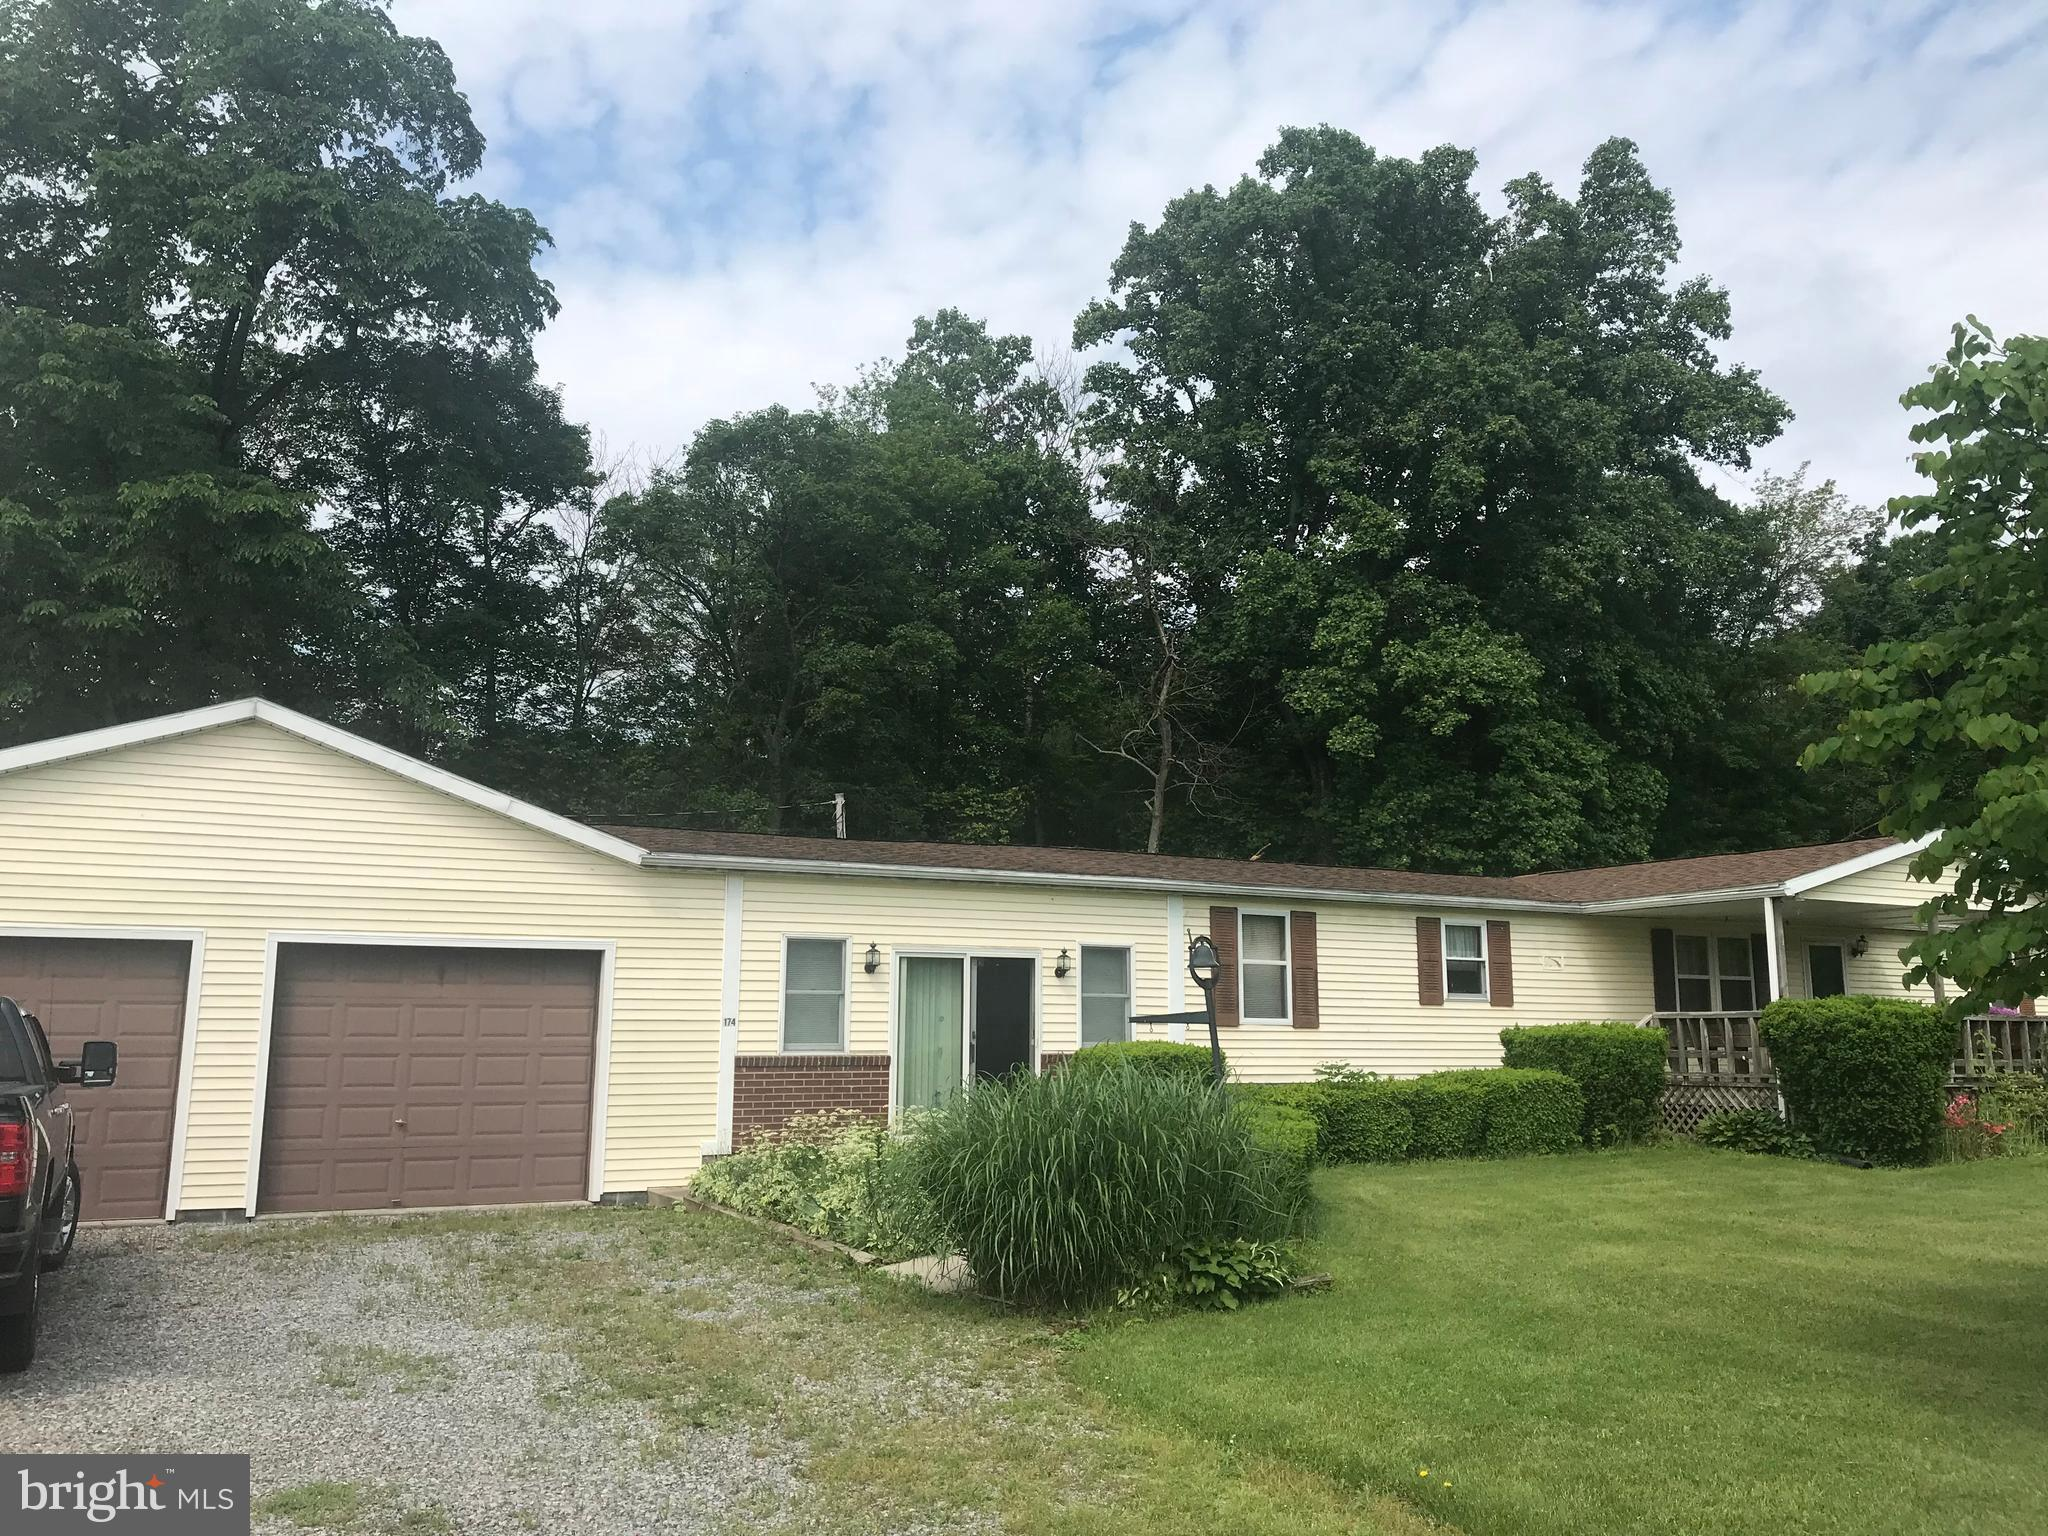 174 COVE ROAD, WELLS TANNERY, PA 16691